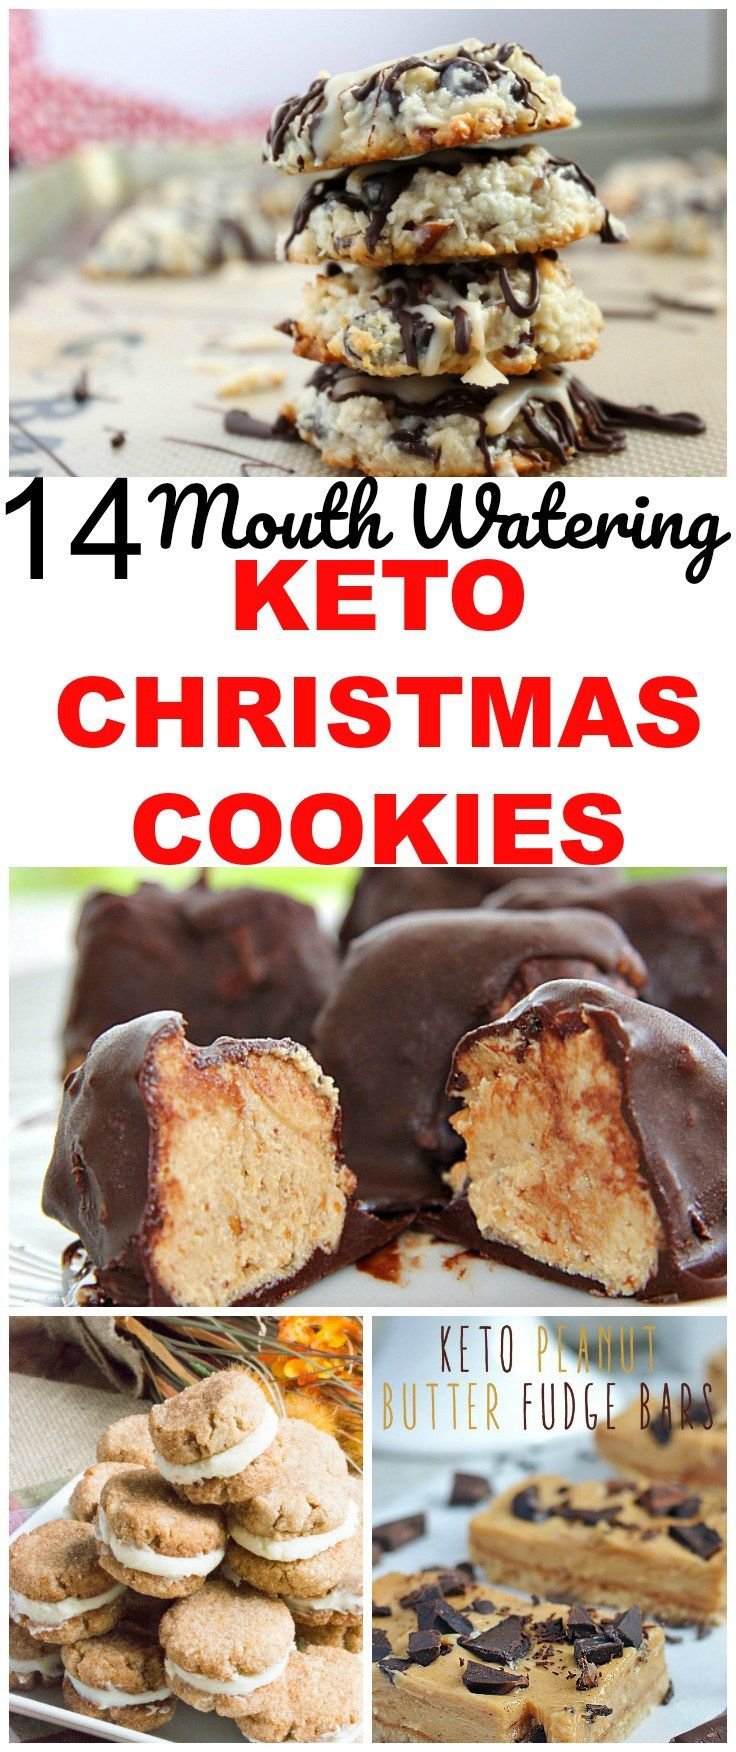 14 Low Carb Cookies Recipes That Make The Best Keto Christmas